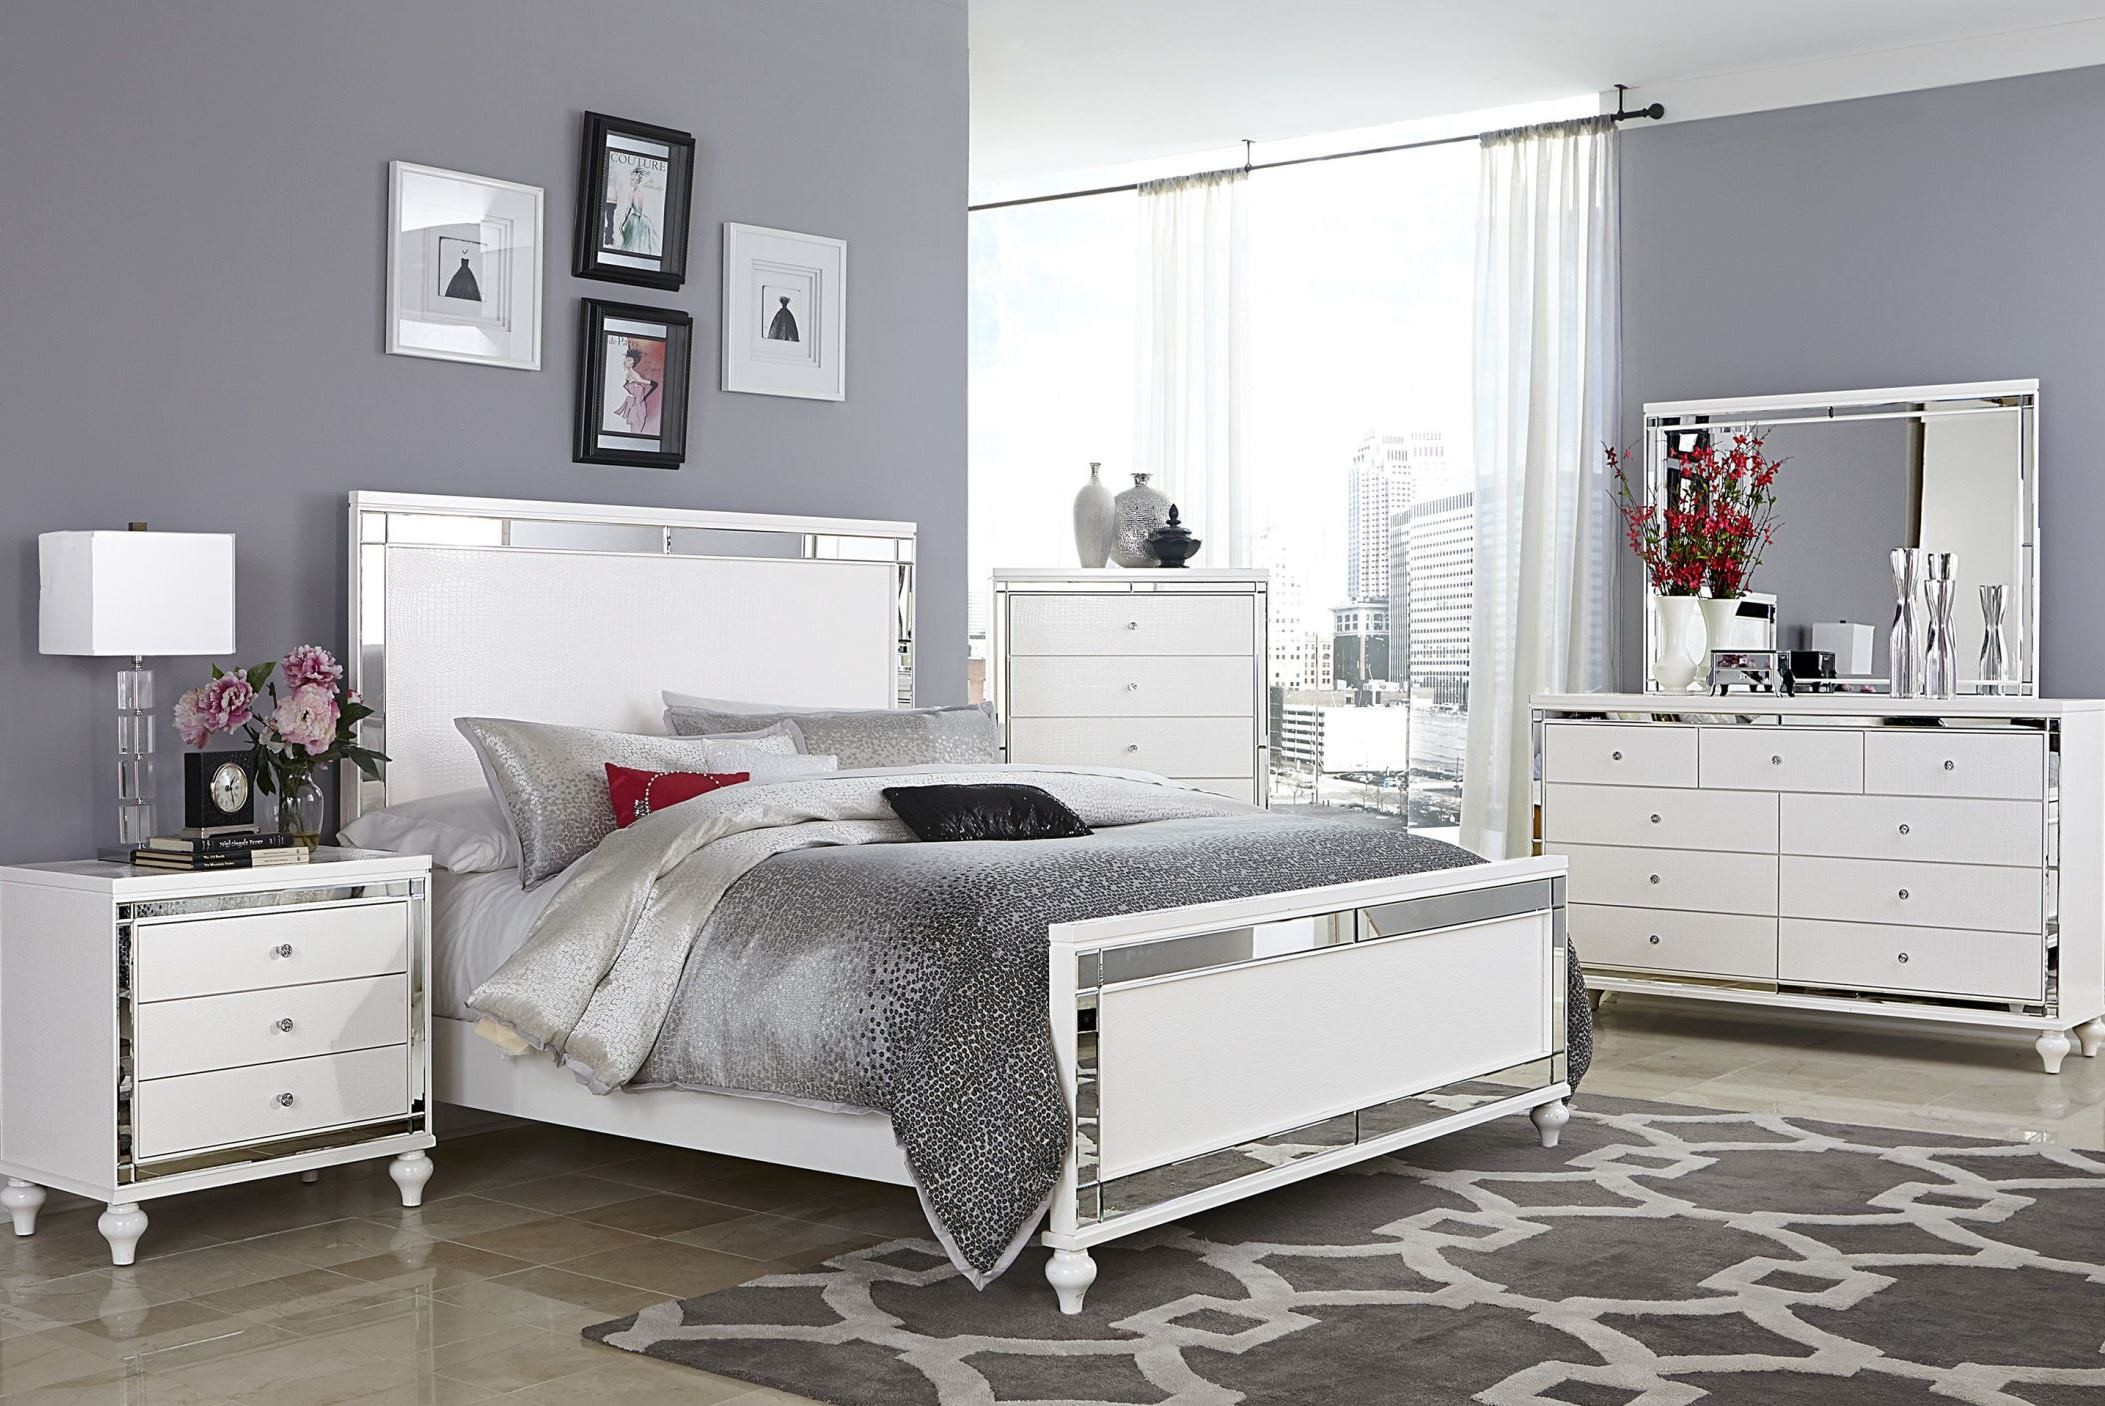 Alonza bright white panel bedroom set from homelegance - Bright house bedroom furniture ...